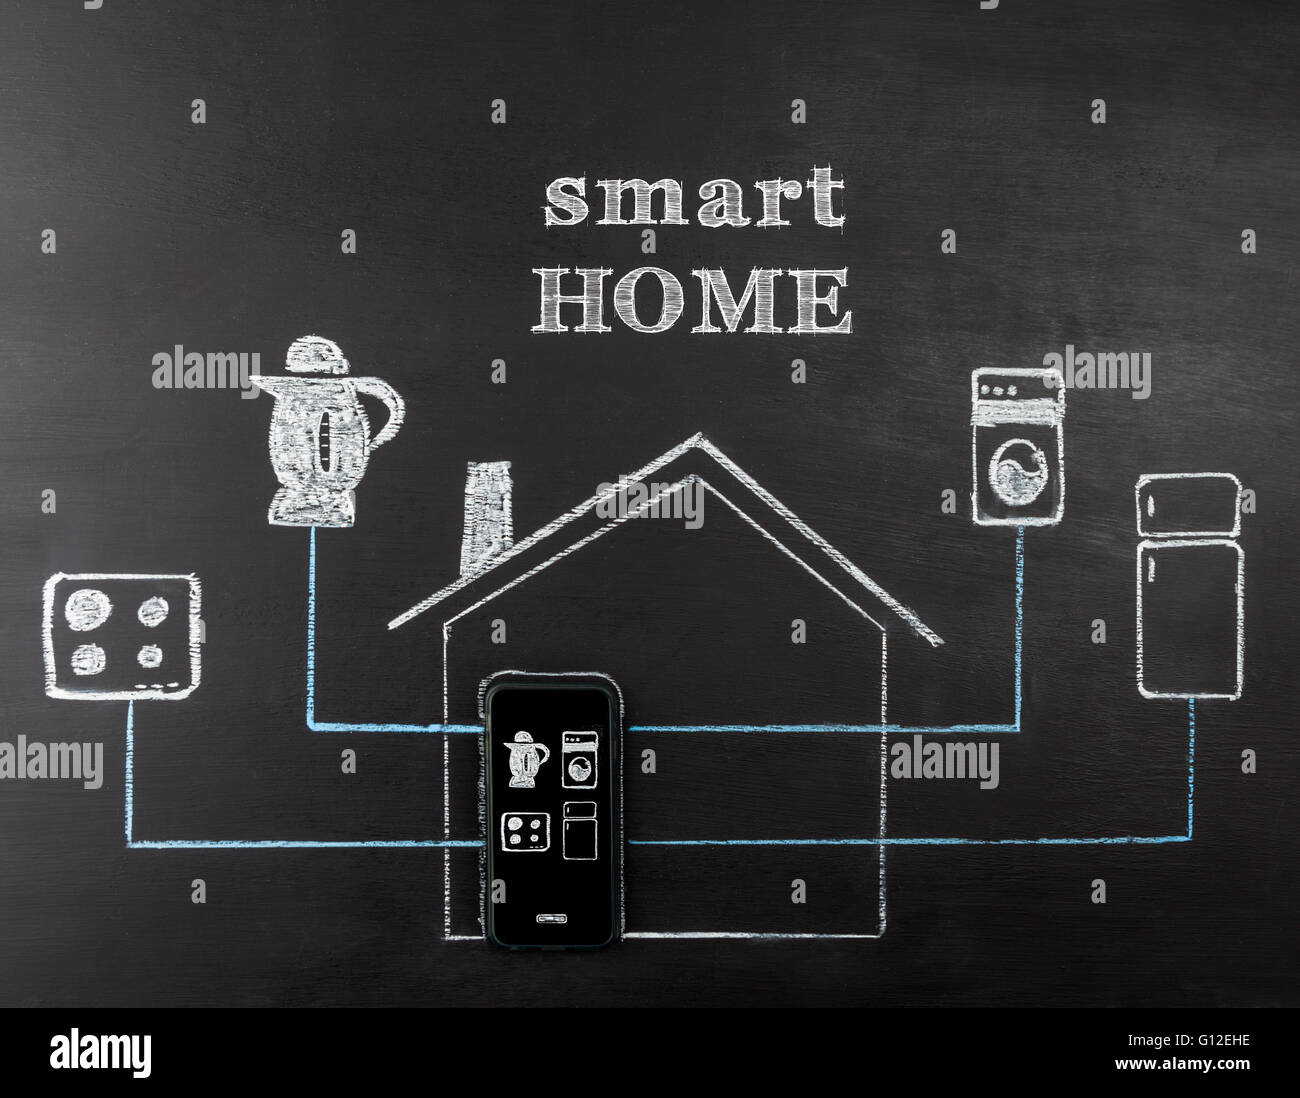 Smart Home Automation Stock Photos Electrical Wiring Diagrams For Homes Concept Hand Drawing On Chalk Board Mobile Phone Controlling Appliances Horizontal